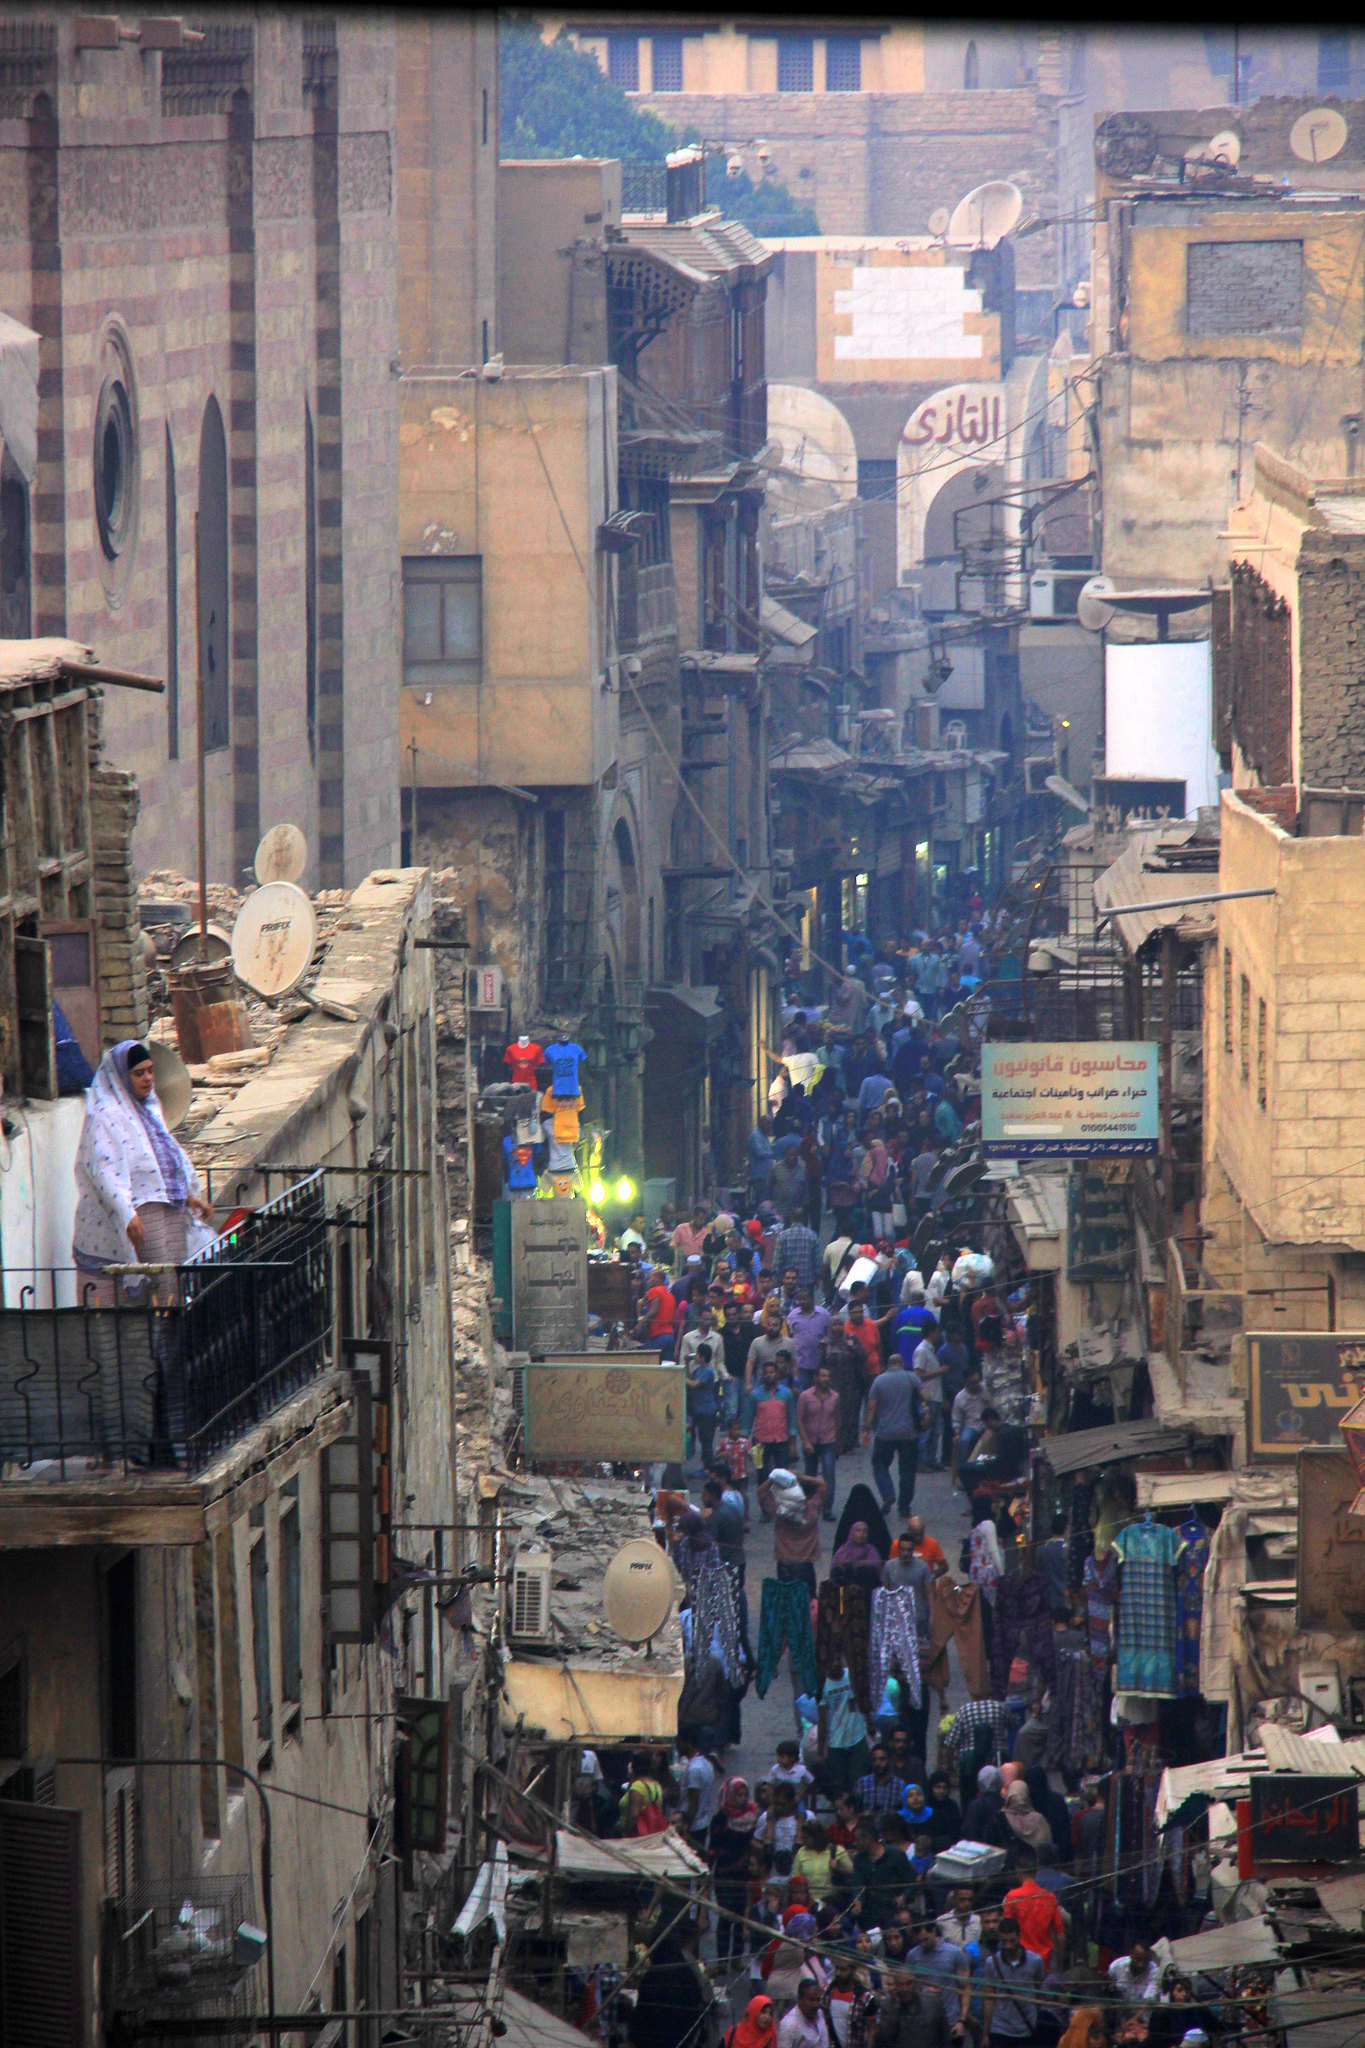 Cairo street photography is worth the hassle